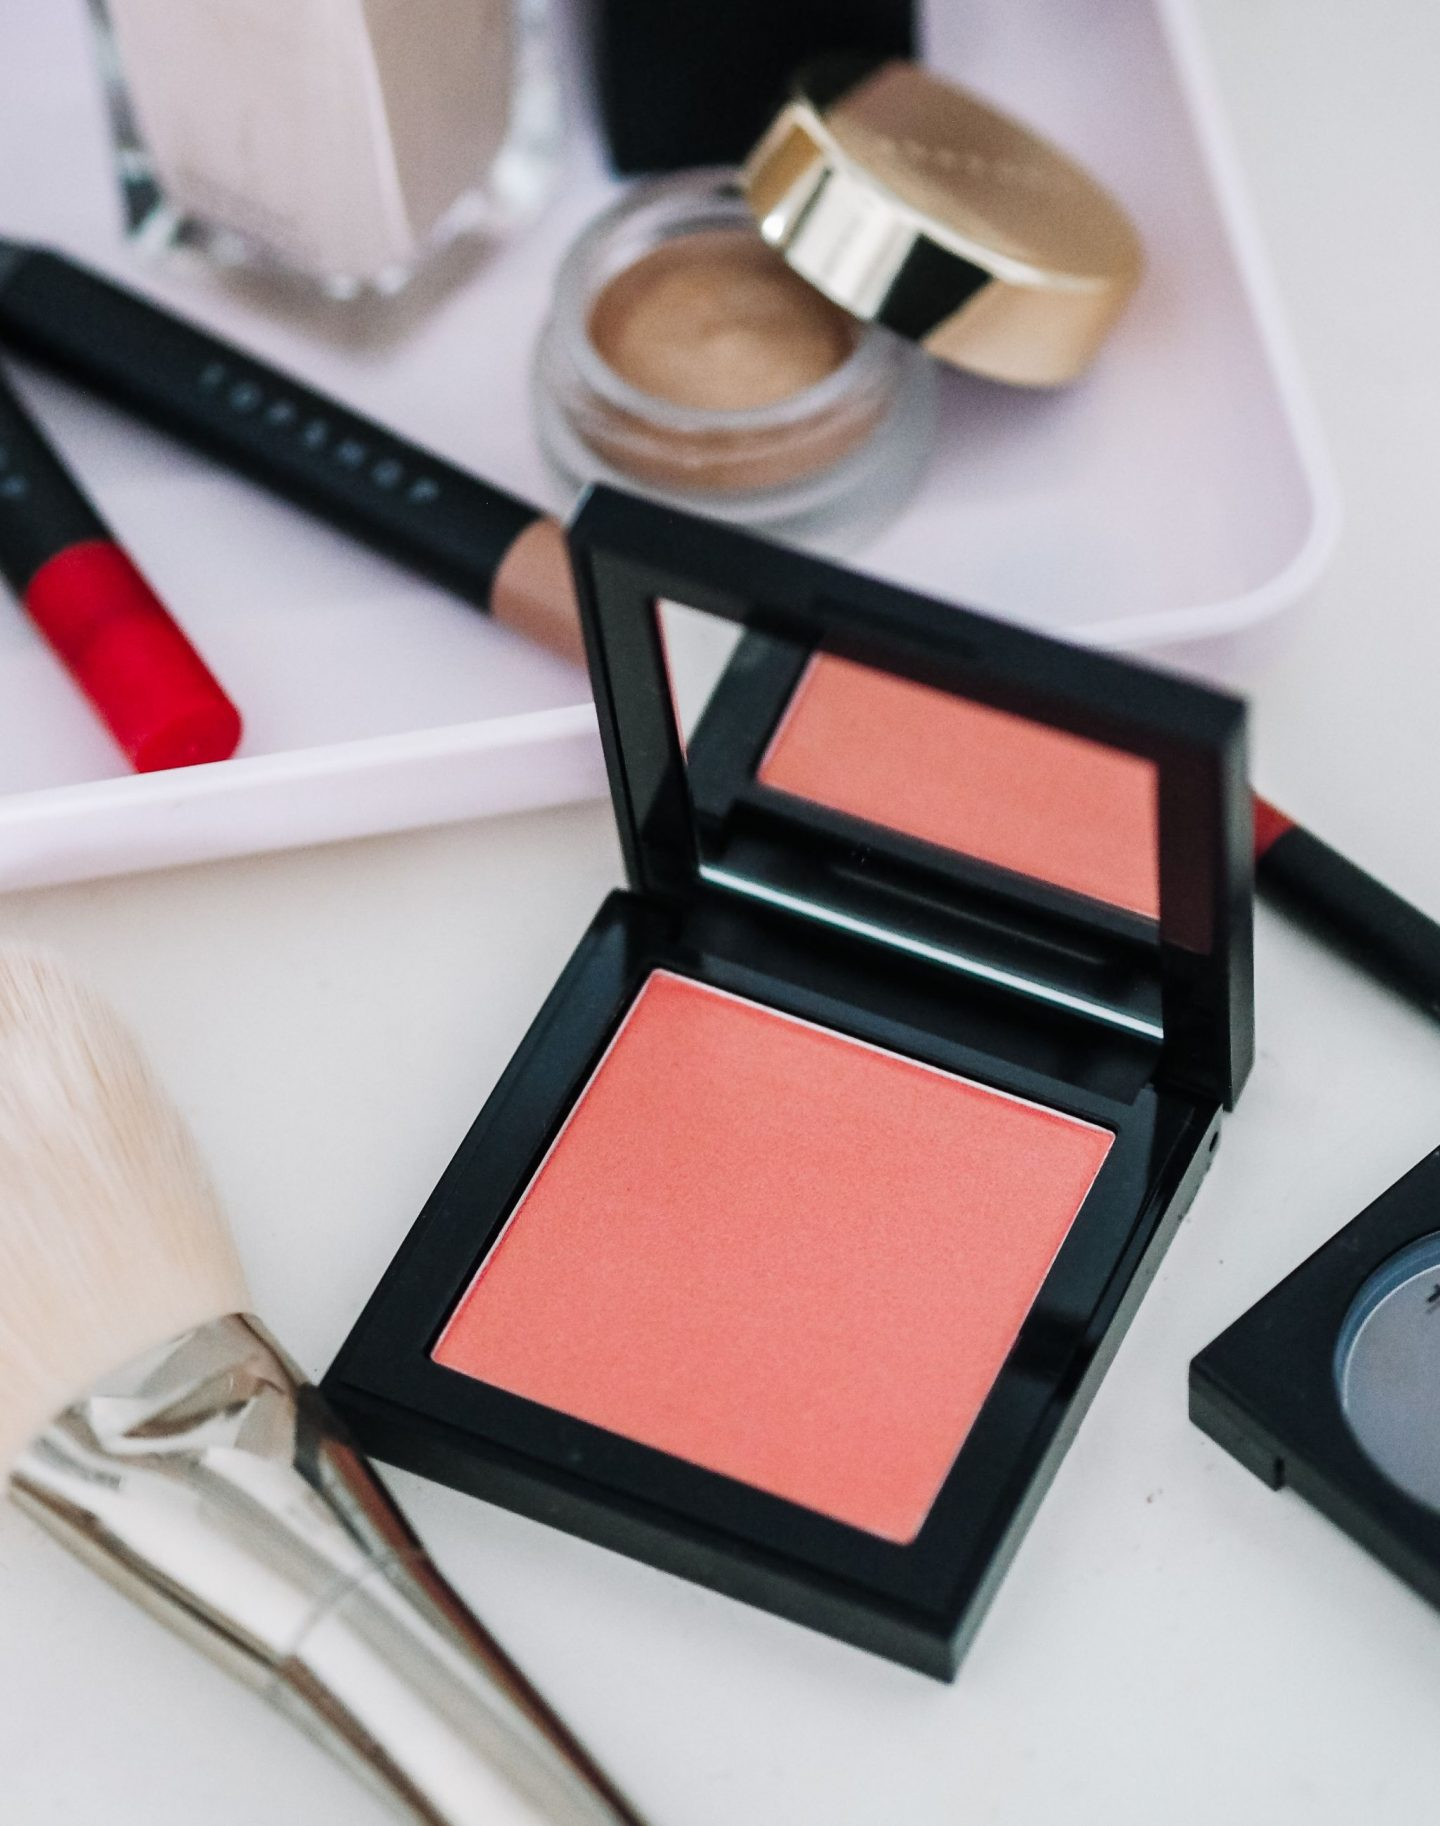 6 Fab Makeup Products You Need To Try From Topshop Beauty